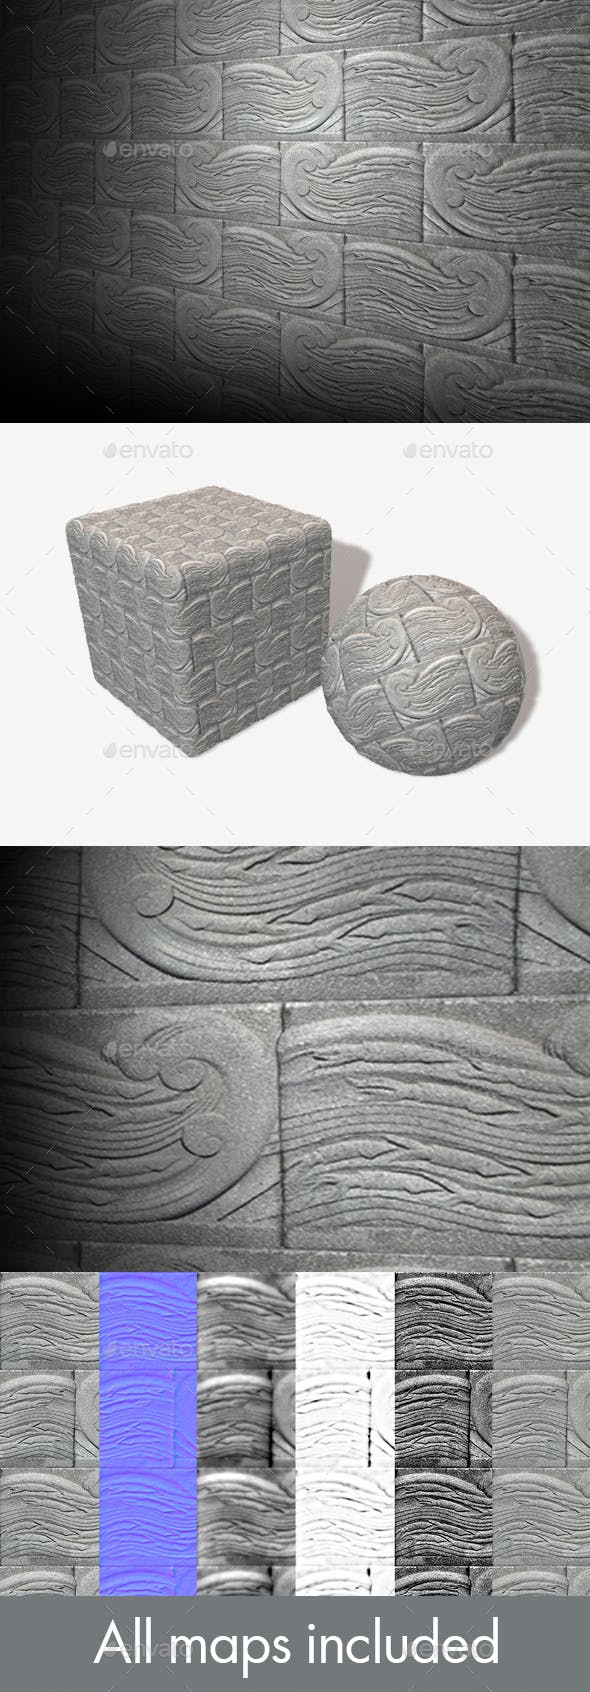 Squid Wave Carved Bricks Seamless Texture - 3DOcean Item for Sale